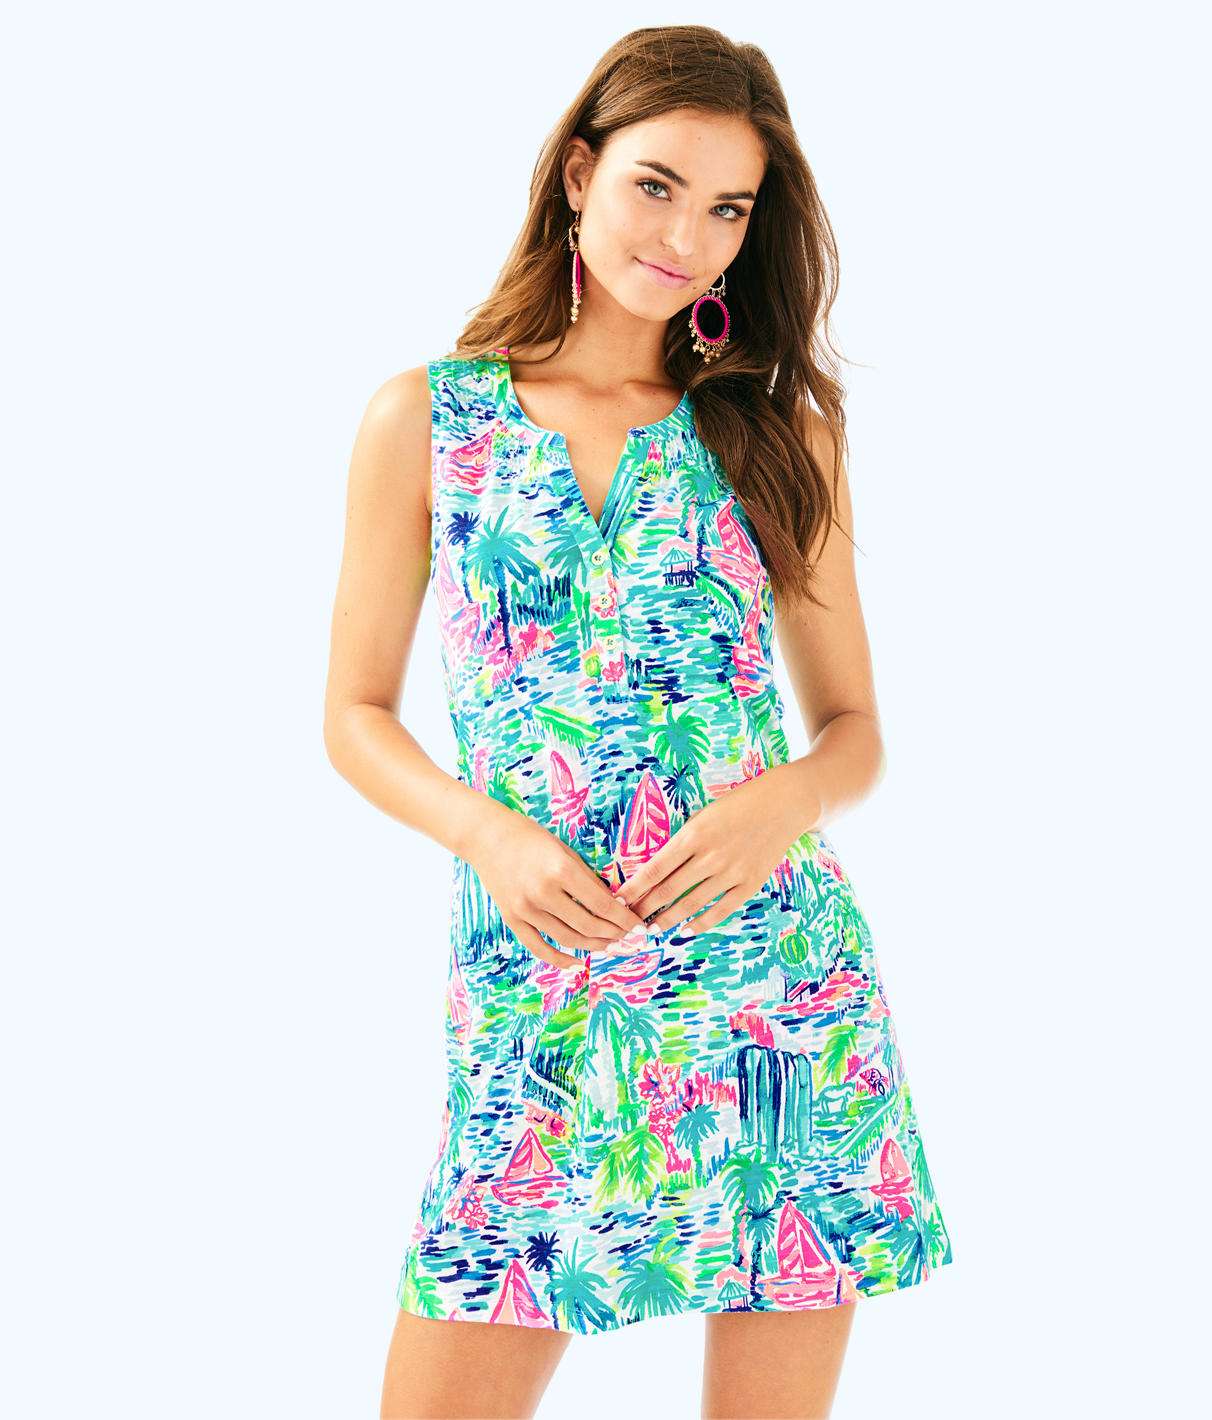 Lilly Pulitzer Lilly Pulitzer Womens Sleeveless Essie Dress